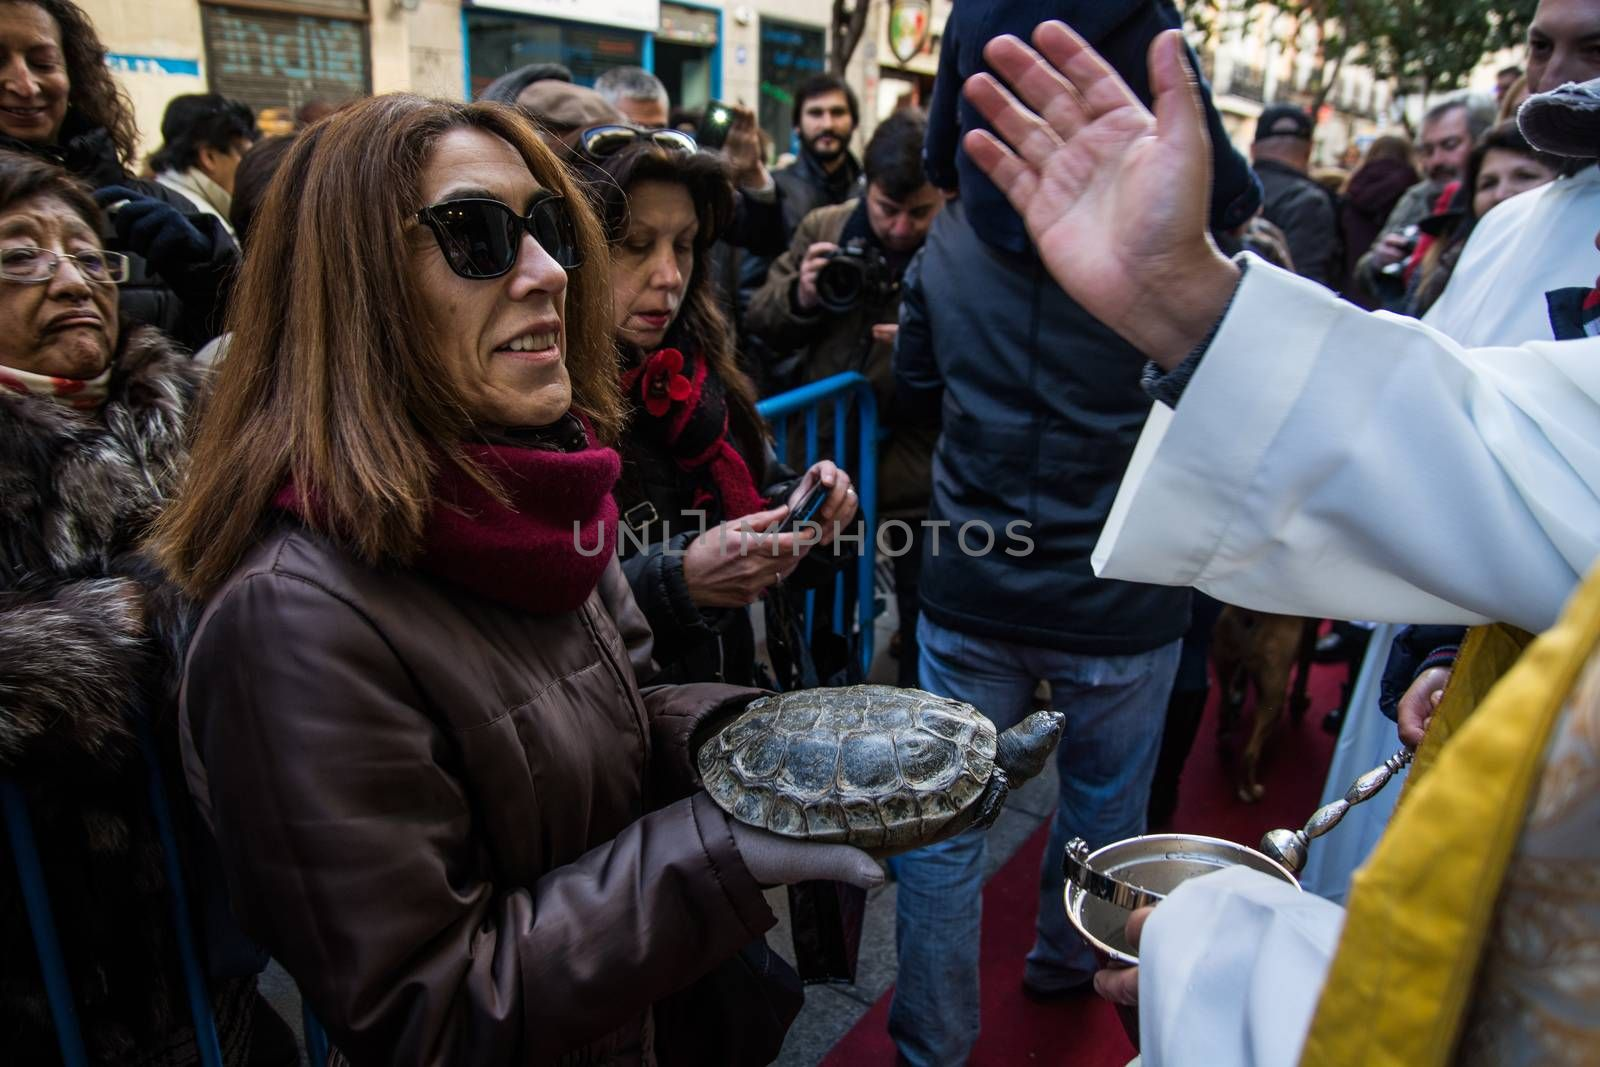 SPAIN, Madrid: A woman holds her pet turtle while it is being blessed by a priest outside the church of San Antón in Calle de Hortaleza in Madrid on Saint Anthony's day, the patron saint of animals, on January 17, 2016.